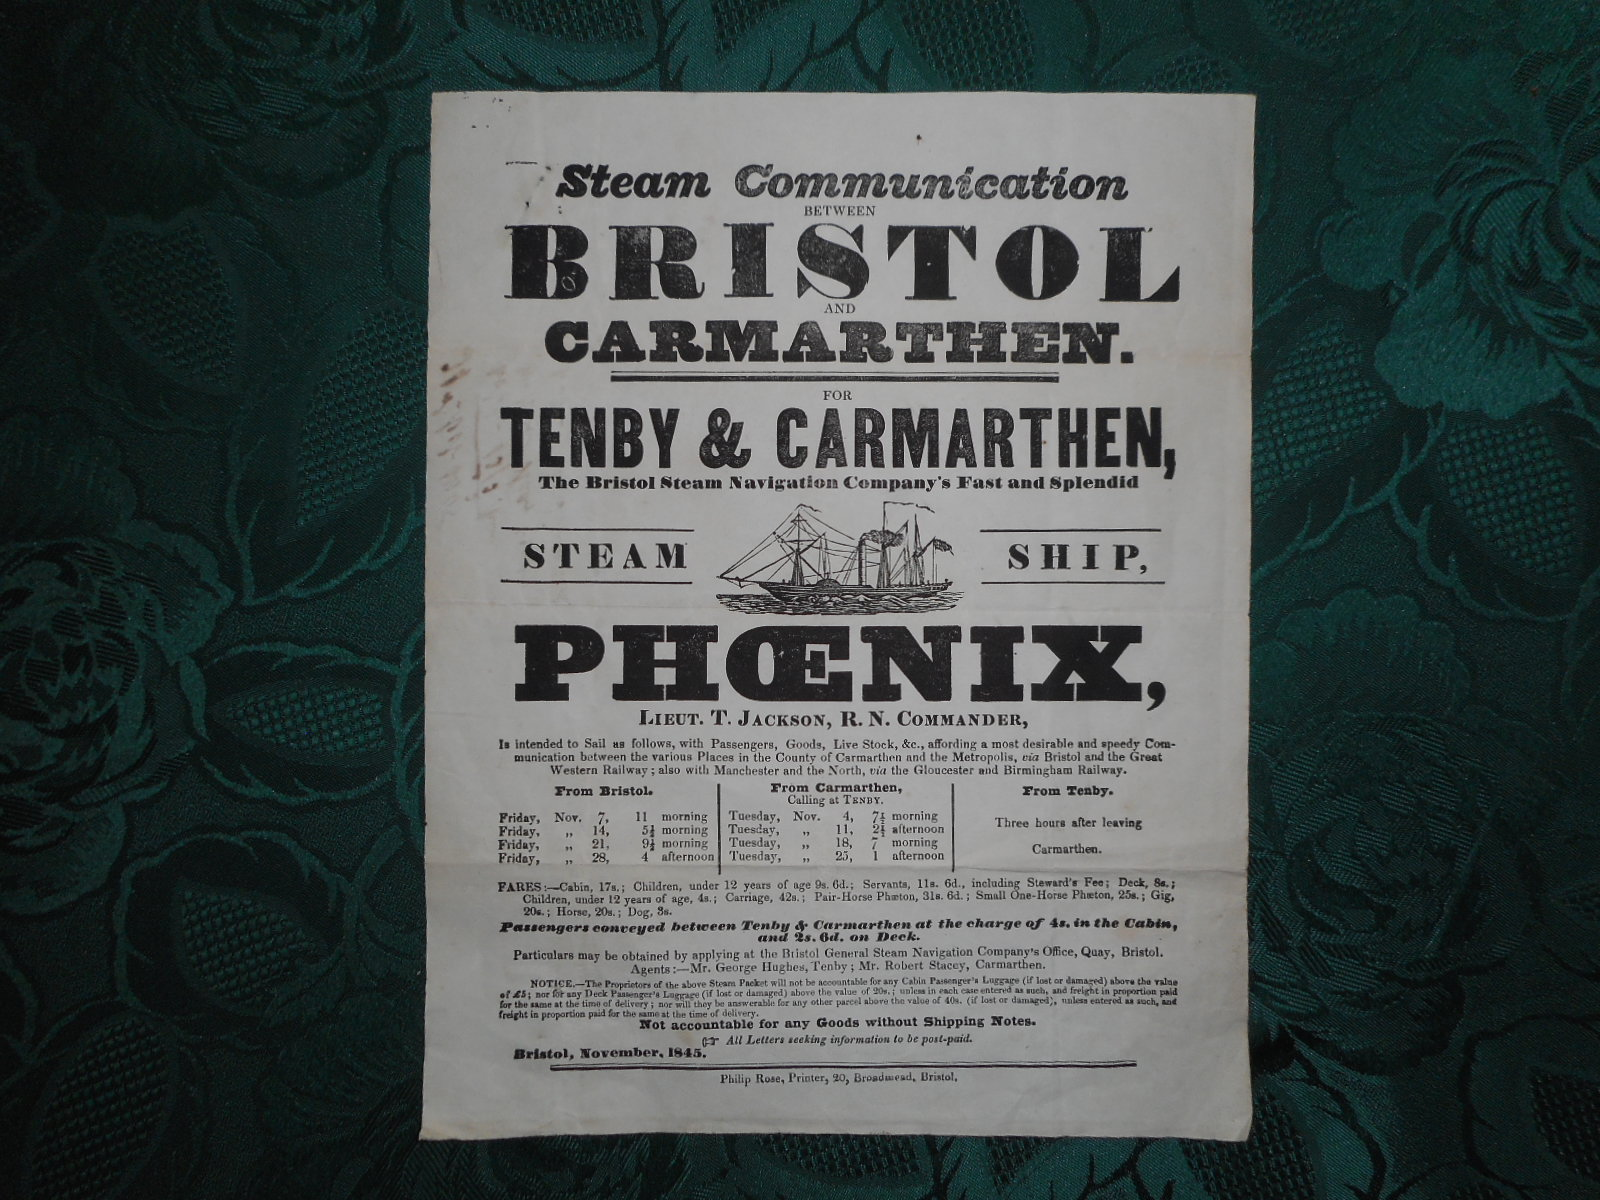 Image for Original 1845 Printed Broadside for the Bristol Steam Navigation Company. Steam Communication between BRISTOL and CARMARTHEN for TENBY & CARMARTHEN The Bristol Steam Navigation Company's Fast and Splendid STEAM SHIP PHOENIX